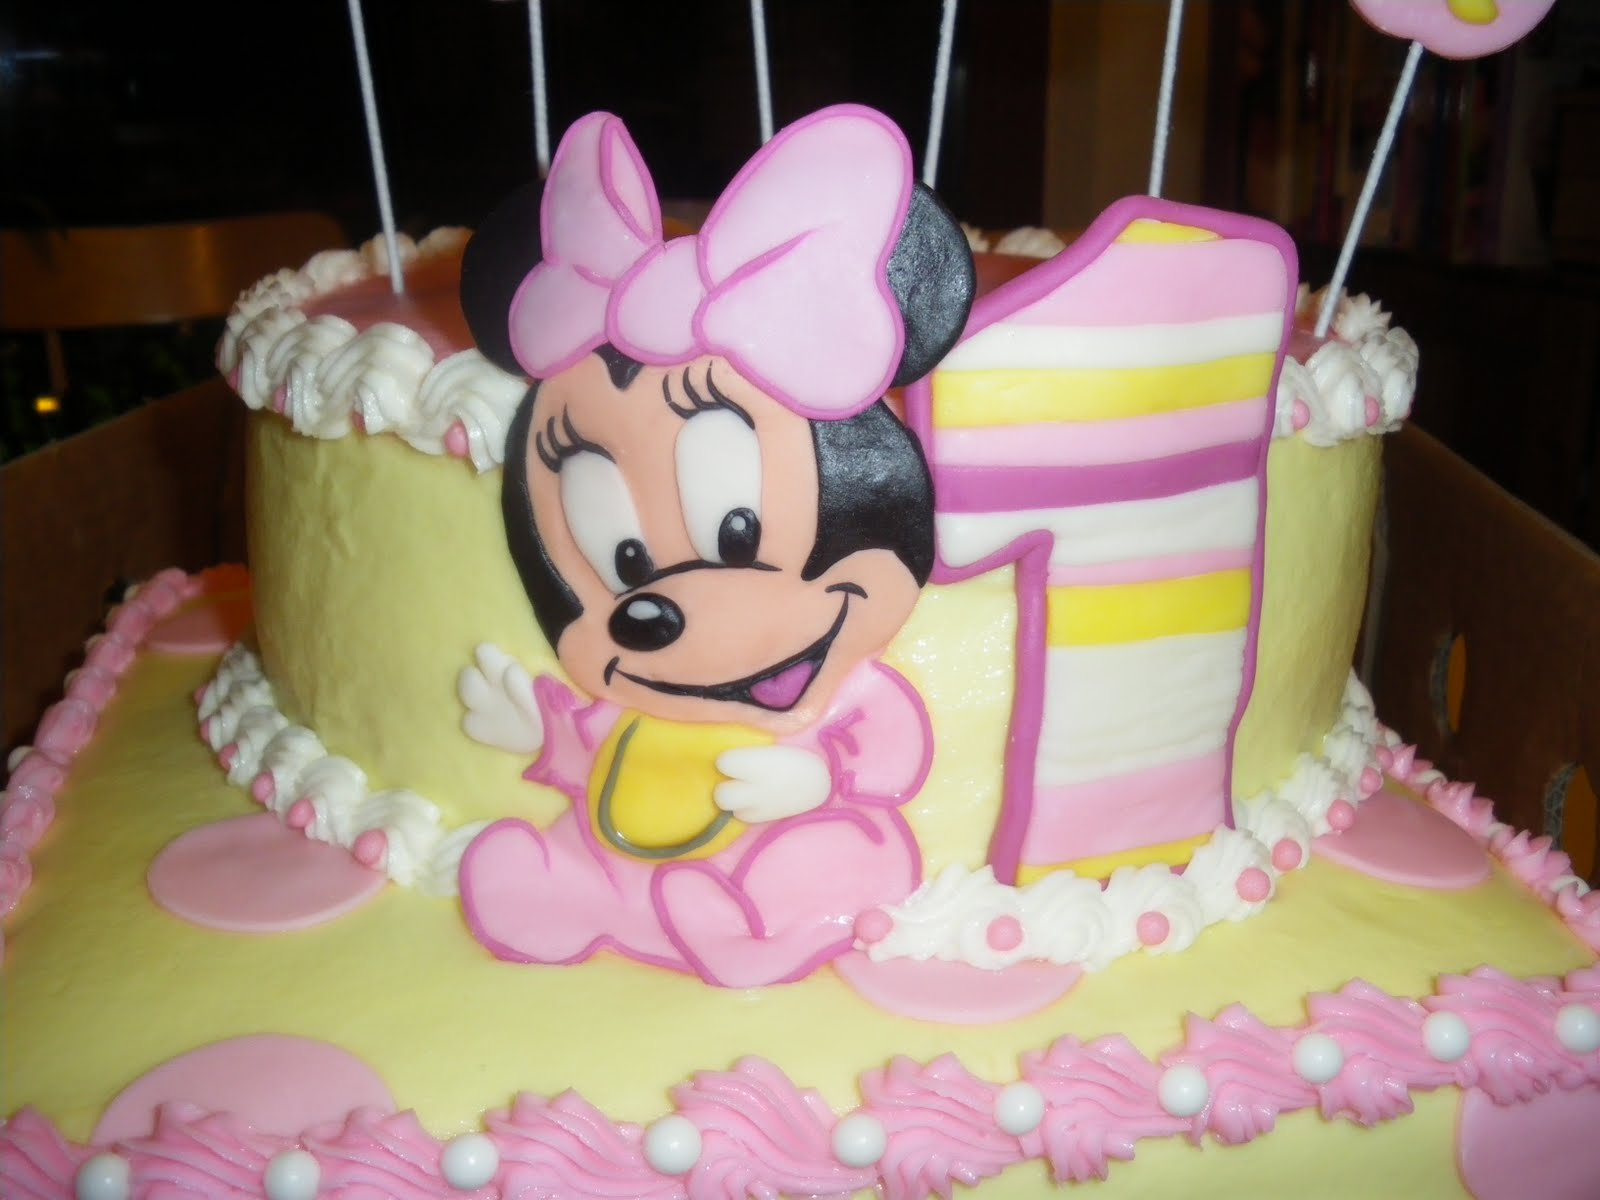 Remarkable 12 Baby Minnie Mouse 1St Birthday Pull Away Cakes Photo Baby Funny Birthday Cards Online Alyptdamsfinfo